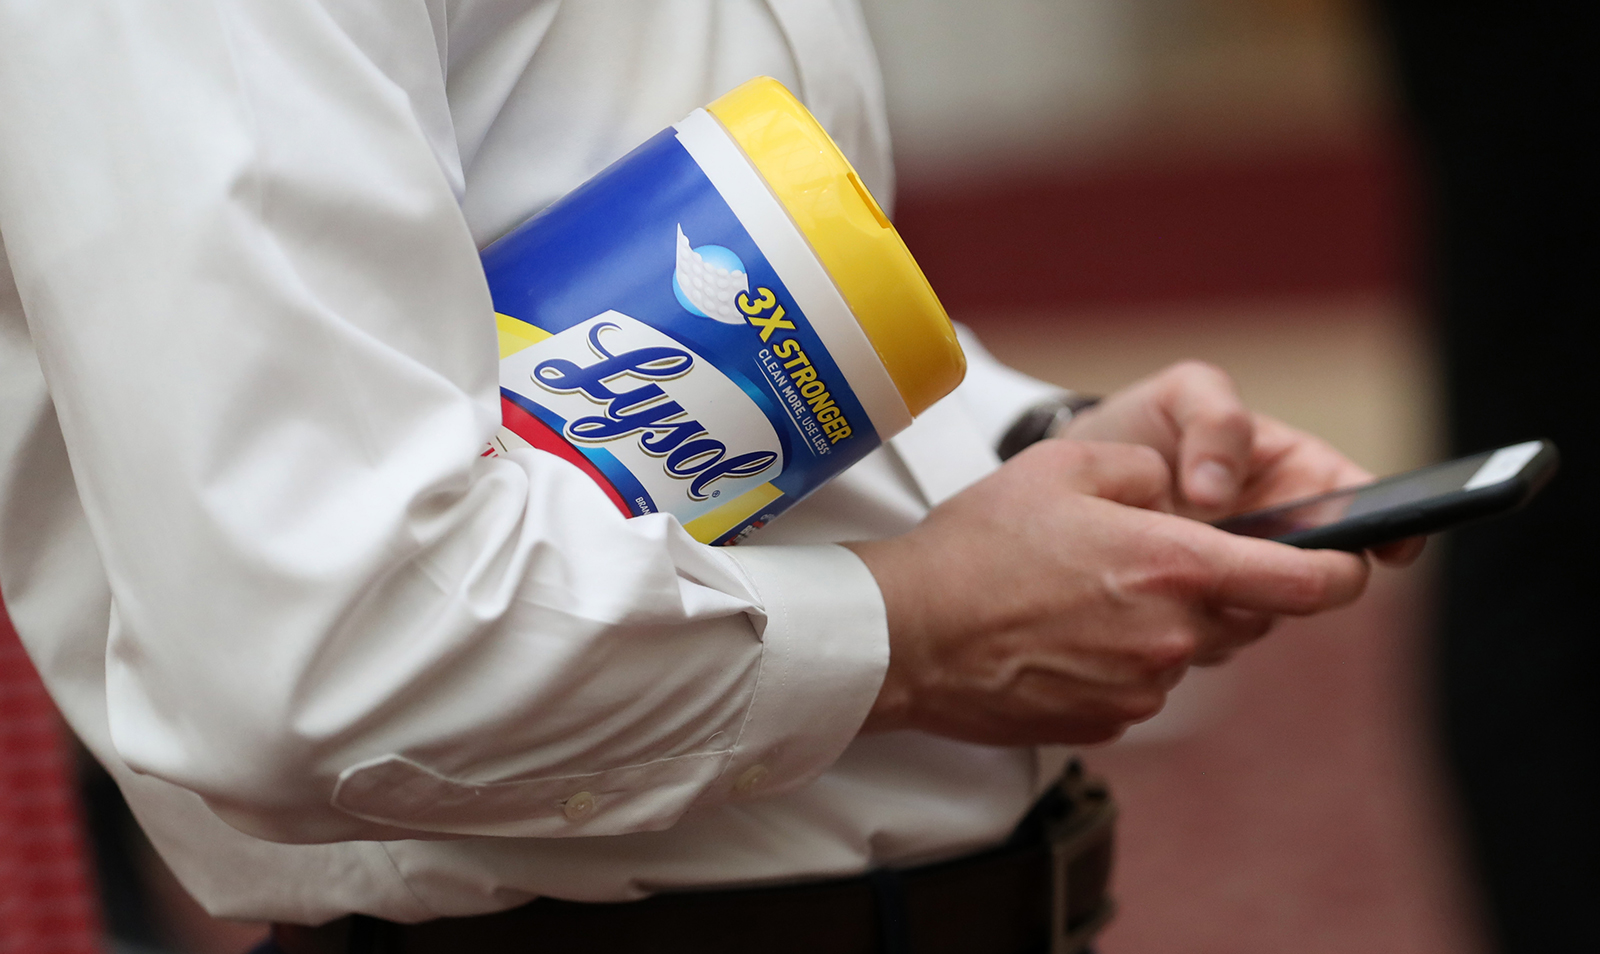 An attendee holds a container of Lysol disinfecting wipes as San Francisco Mayor London Breed speaks during a press conference on March 16 in San Francisco, California.